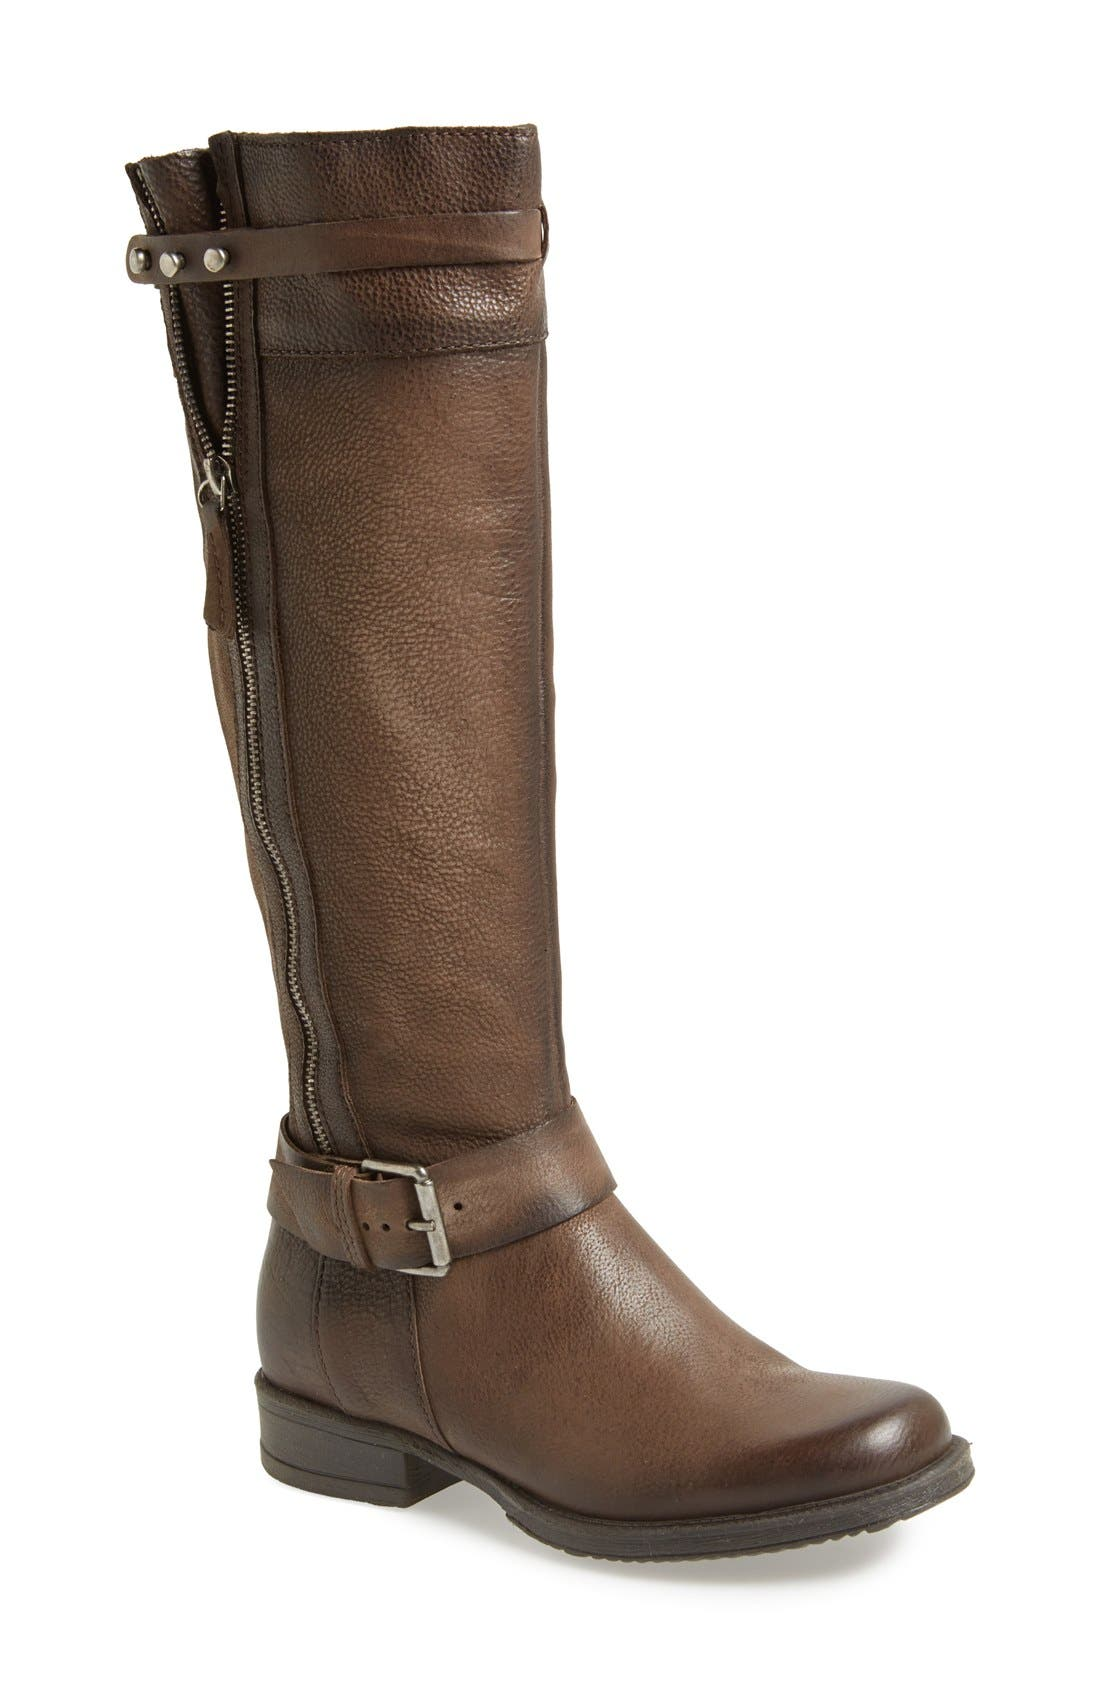 Alternate Image 1 Selected - Miz Mooz 'Nicola' Riding Boot (Women)